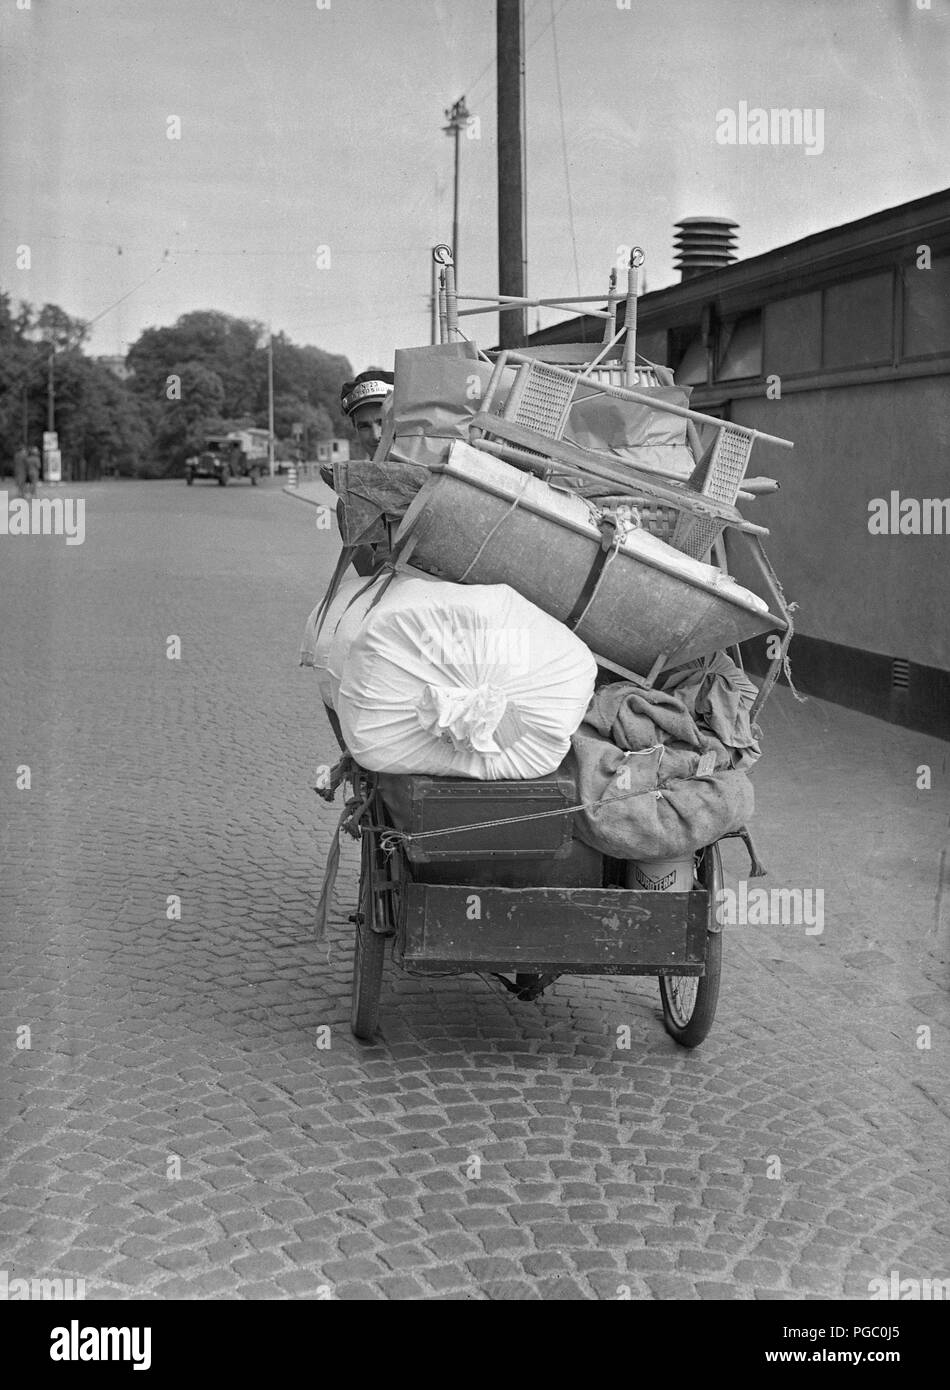 1940s transportation. A young man is working as a bicycle messanger and transporting goods in Stockholm city with his transport bicycle. June 1940.  Photo Kristoffersson 146-8 - Stock Image